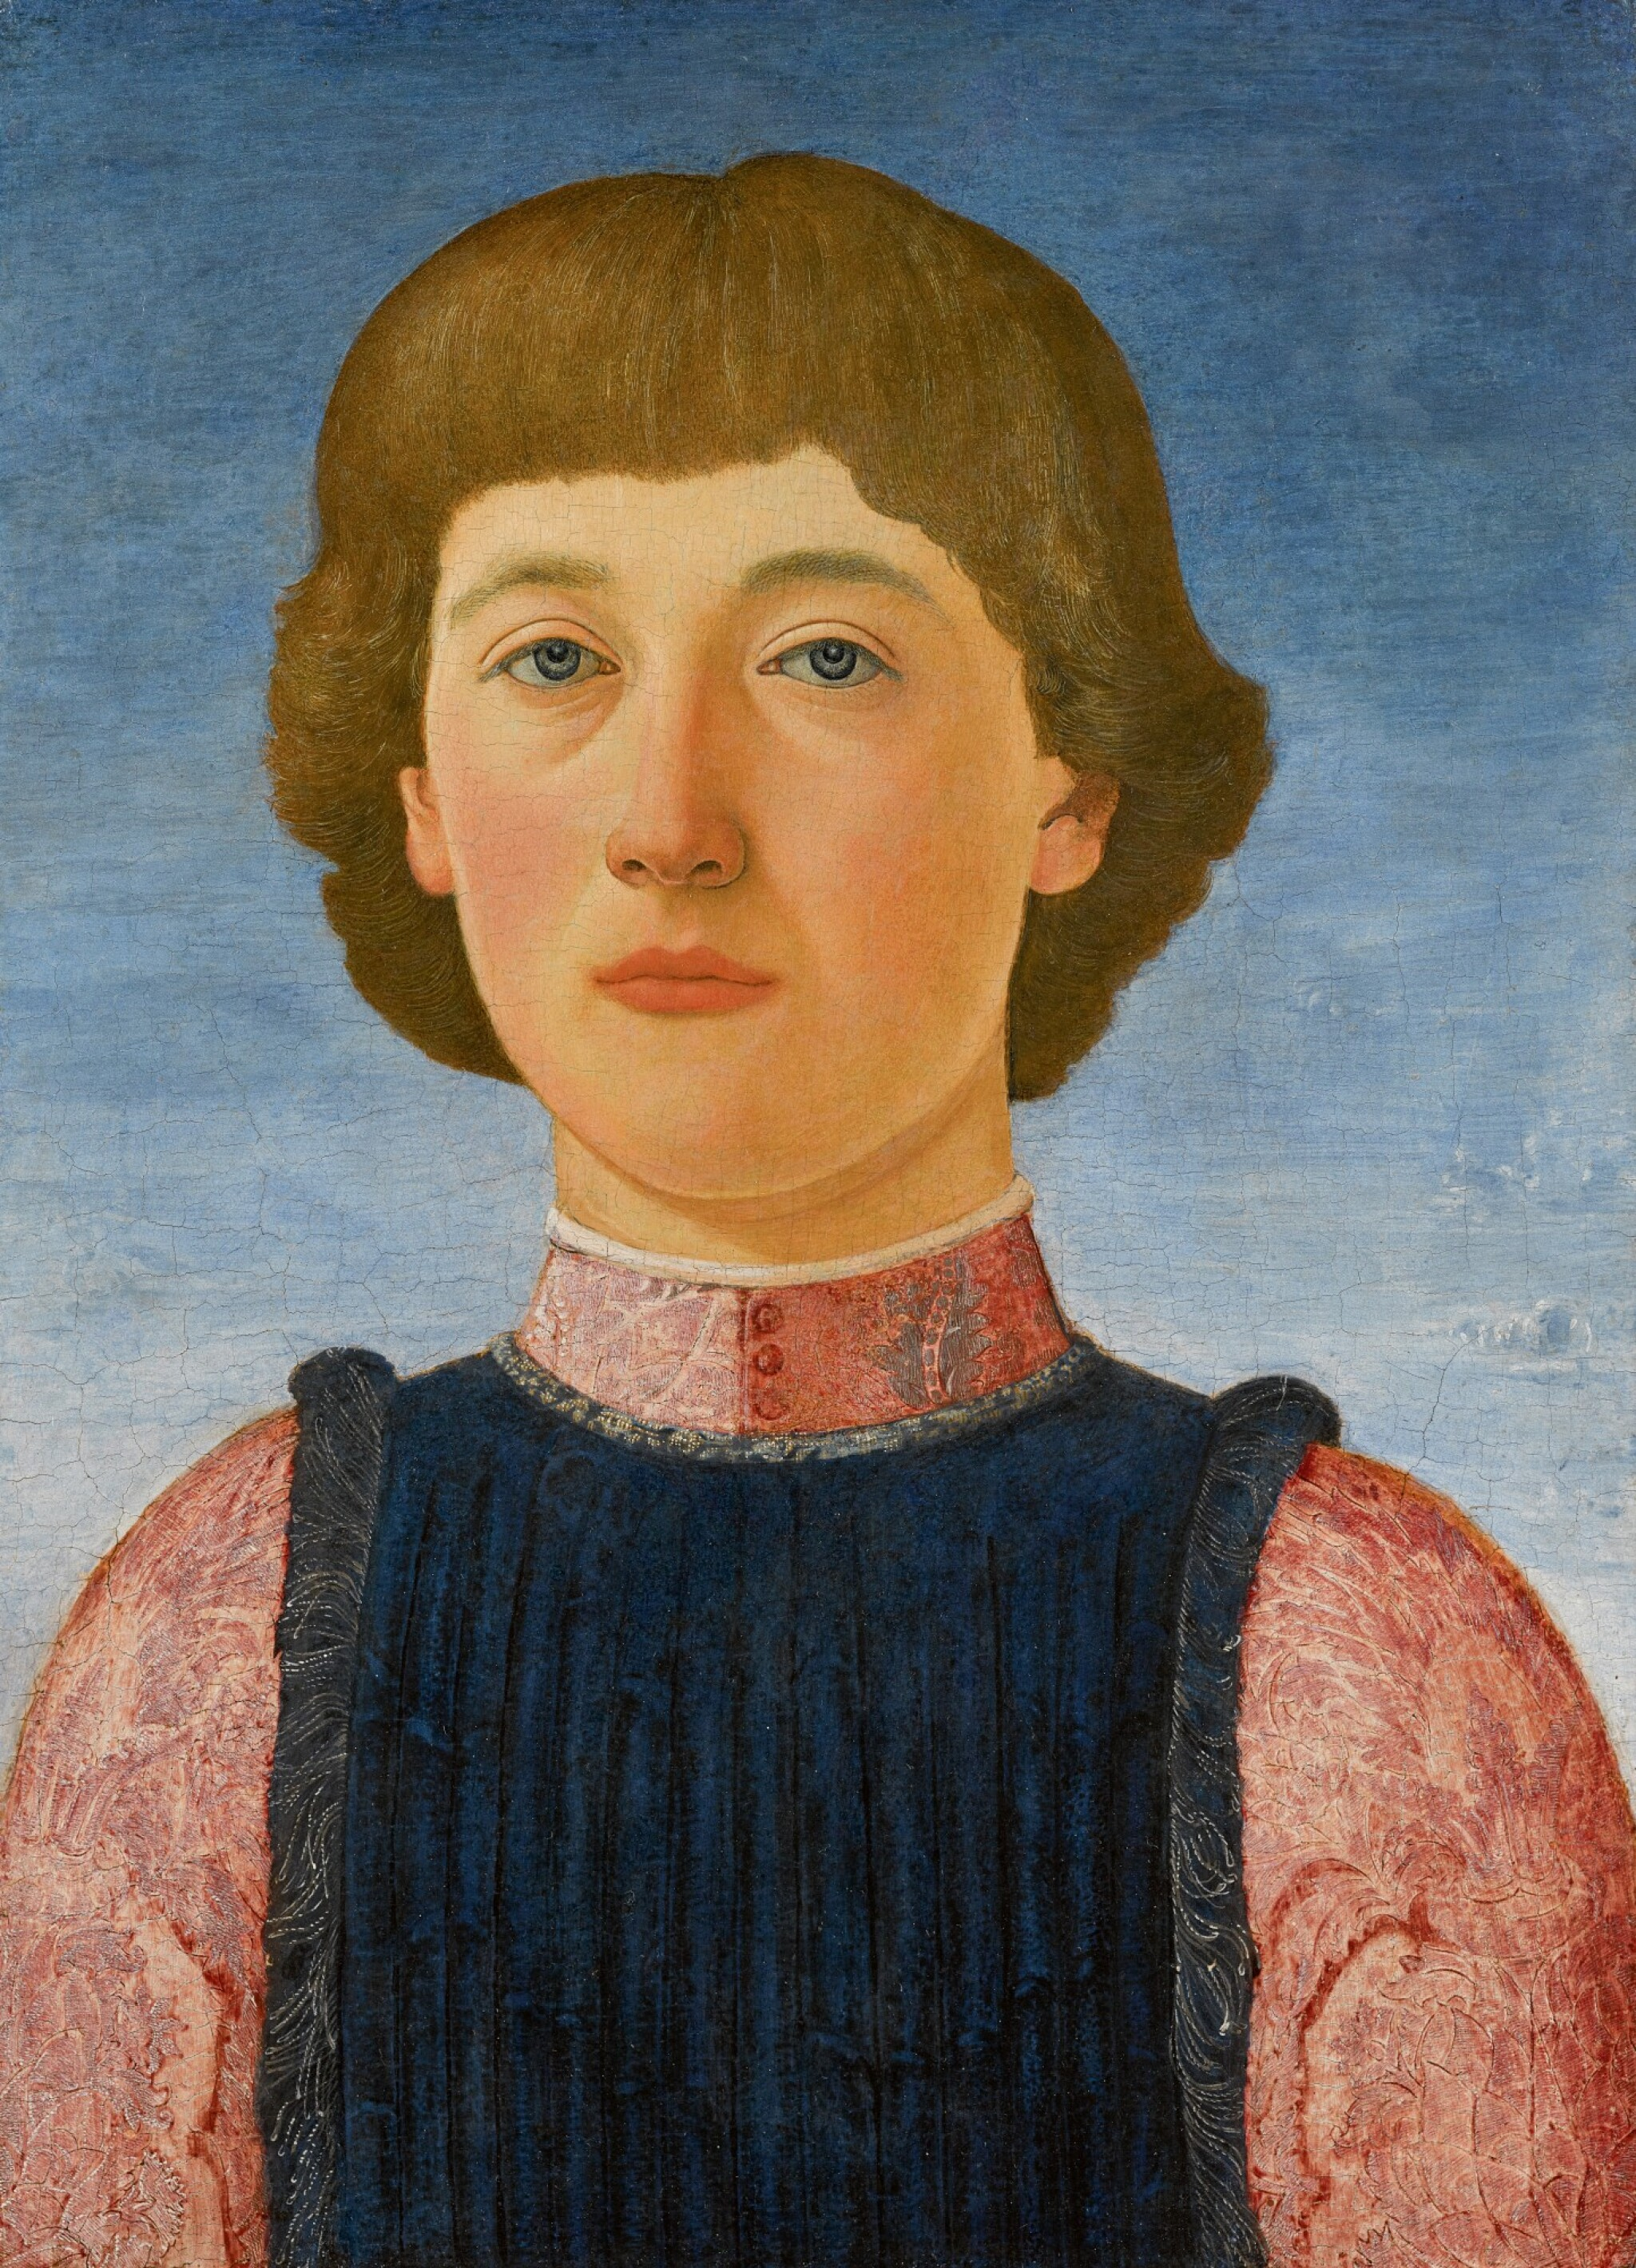 View 1 of Portrait of a Youth.